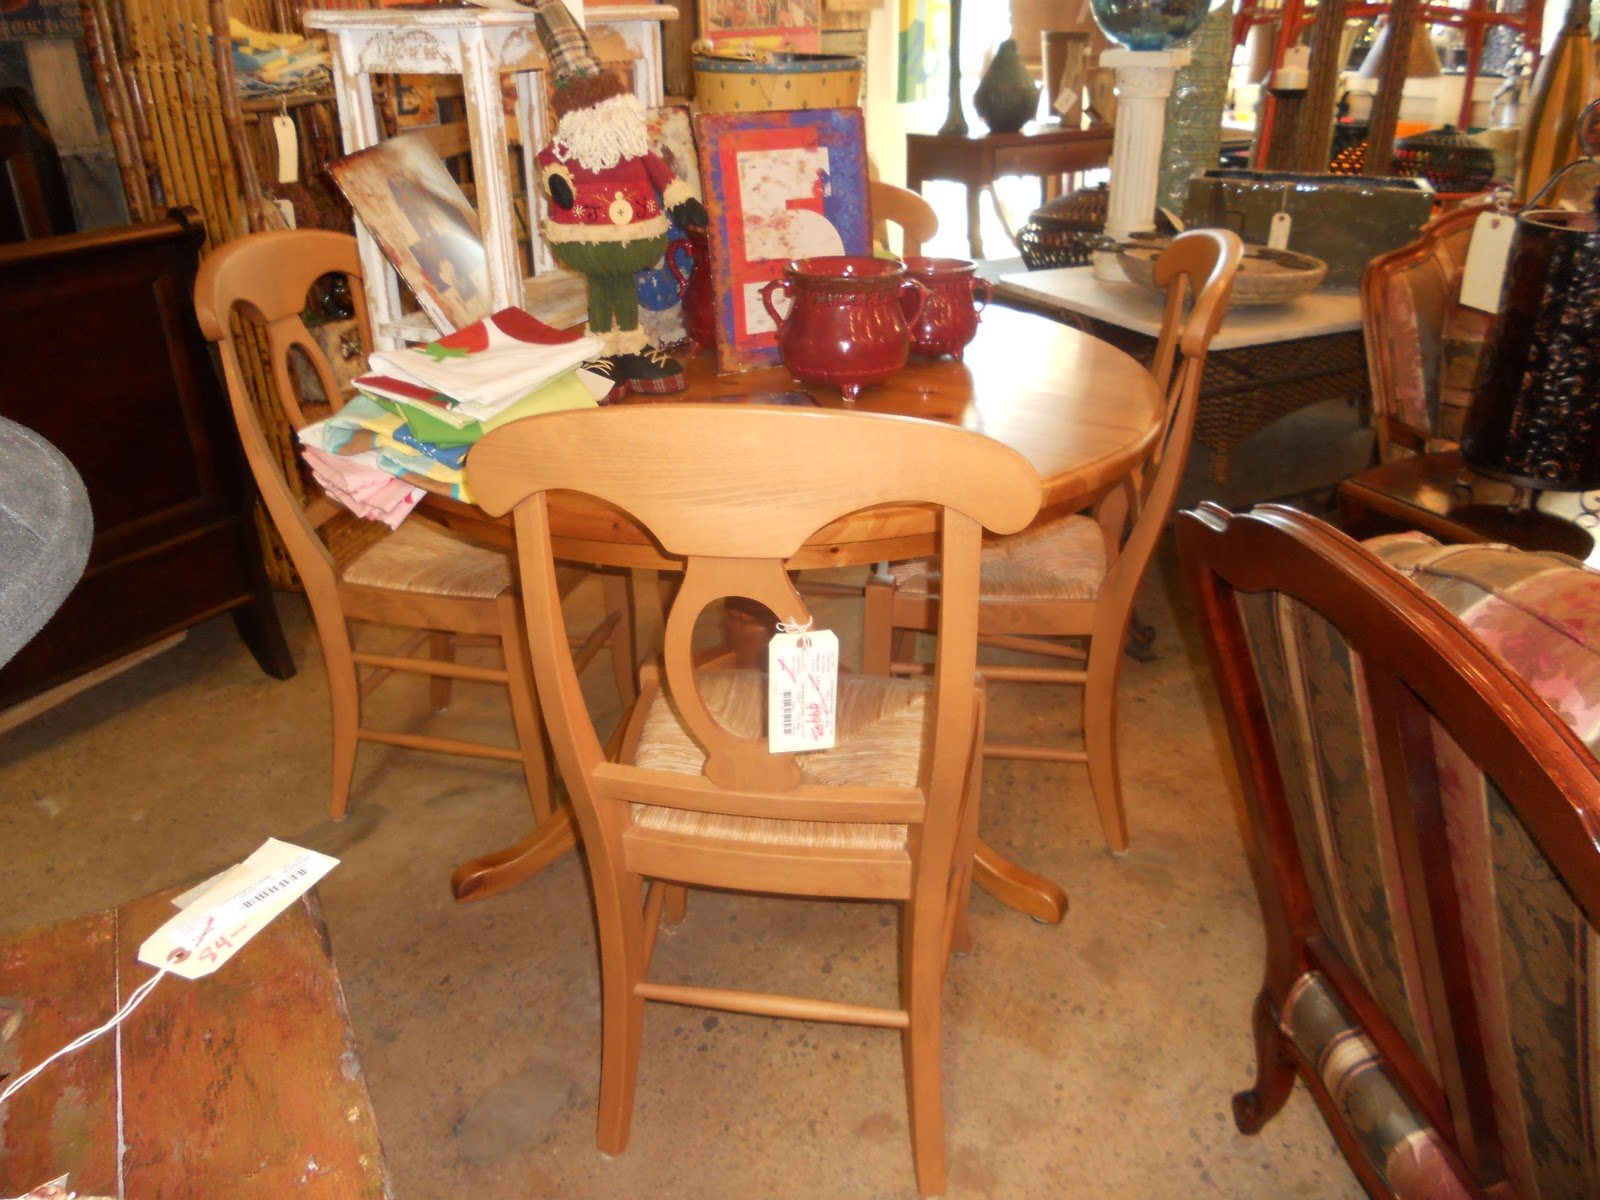 New Pottery Barn Dining Room Chairs Unique Inmunoanalisiscom - Pottery barn pine table